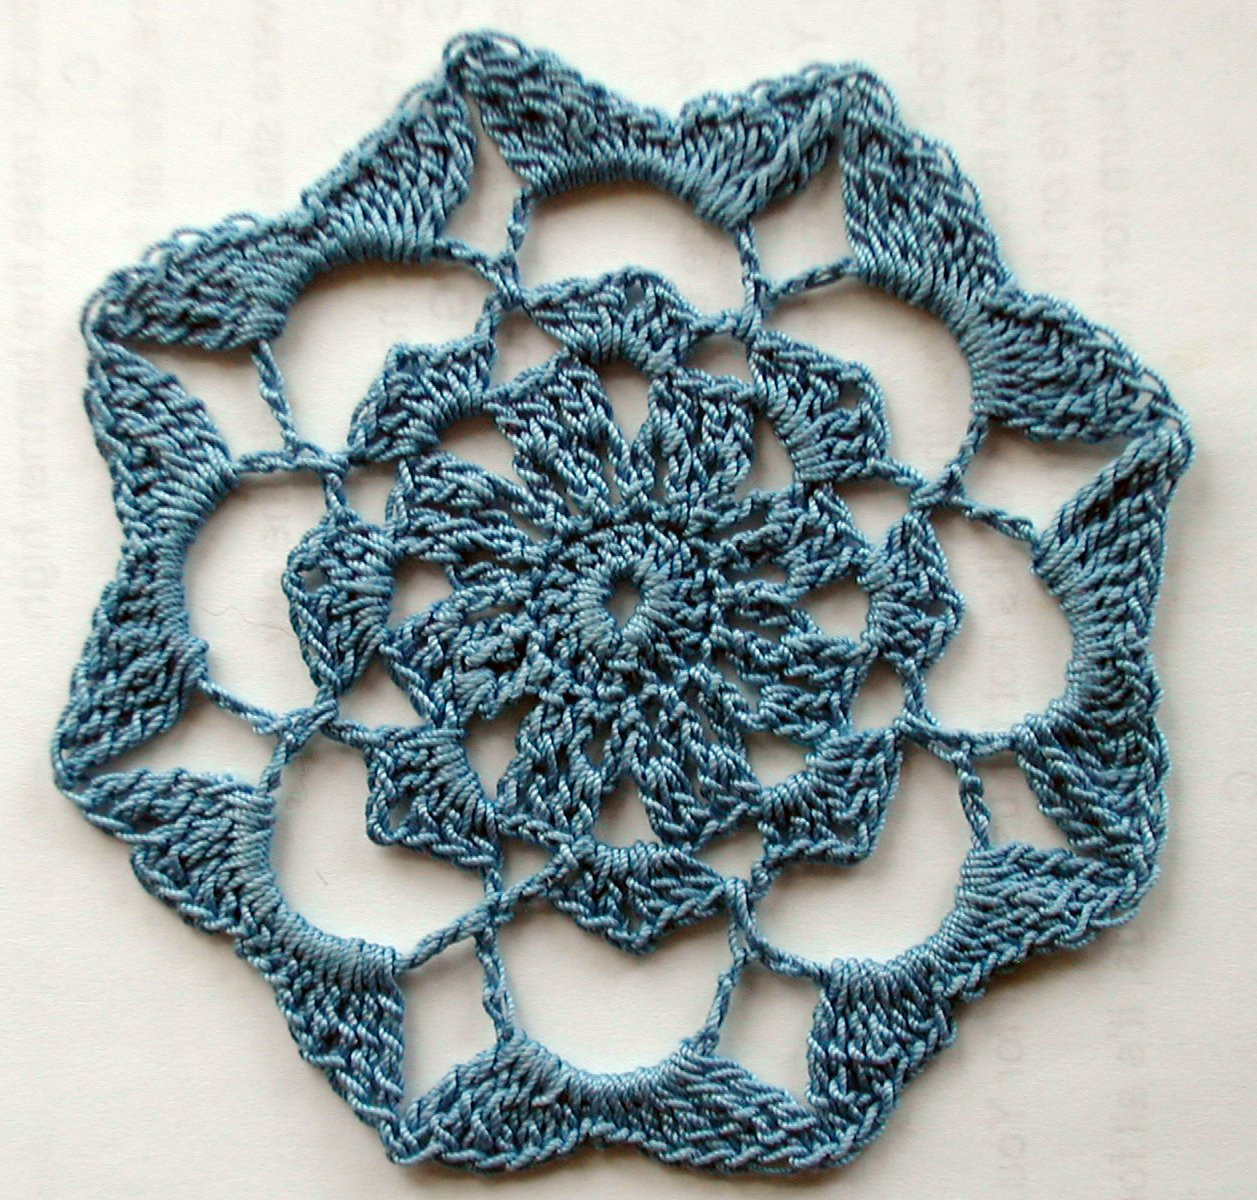 Doily Patterns Unique Crochet Doily Large Pattern Star – Crochet Patterns Of Innovative 50 Models Doily Patterns